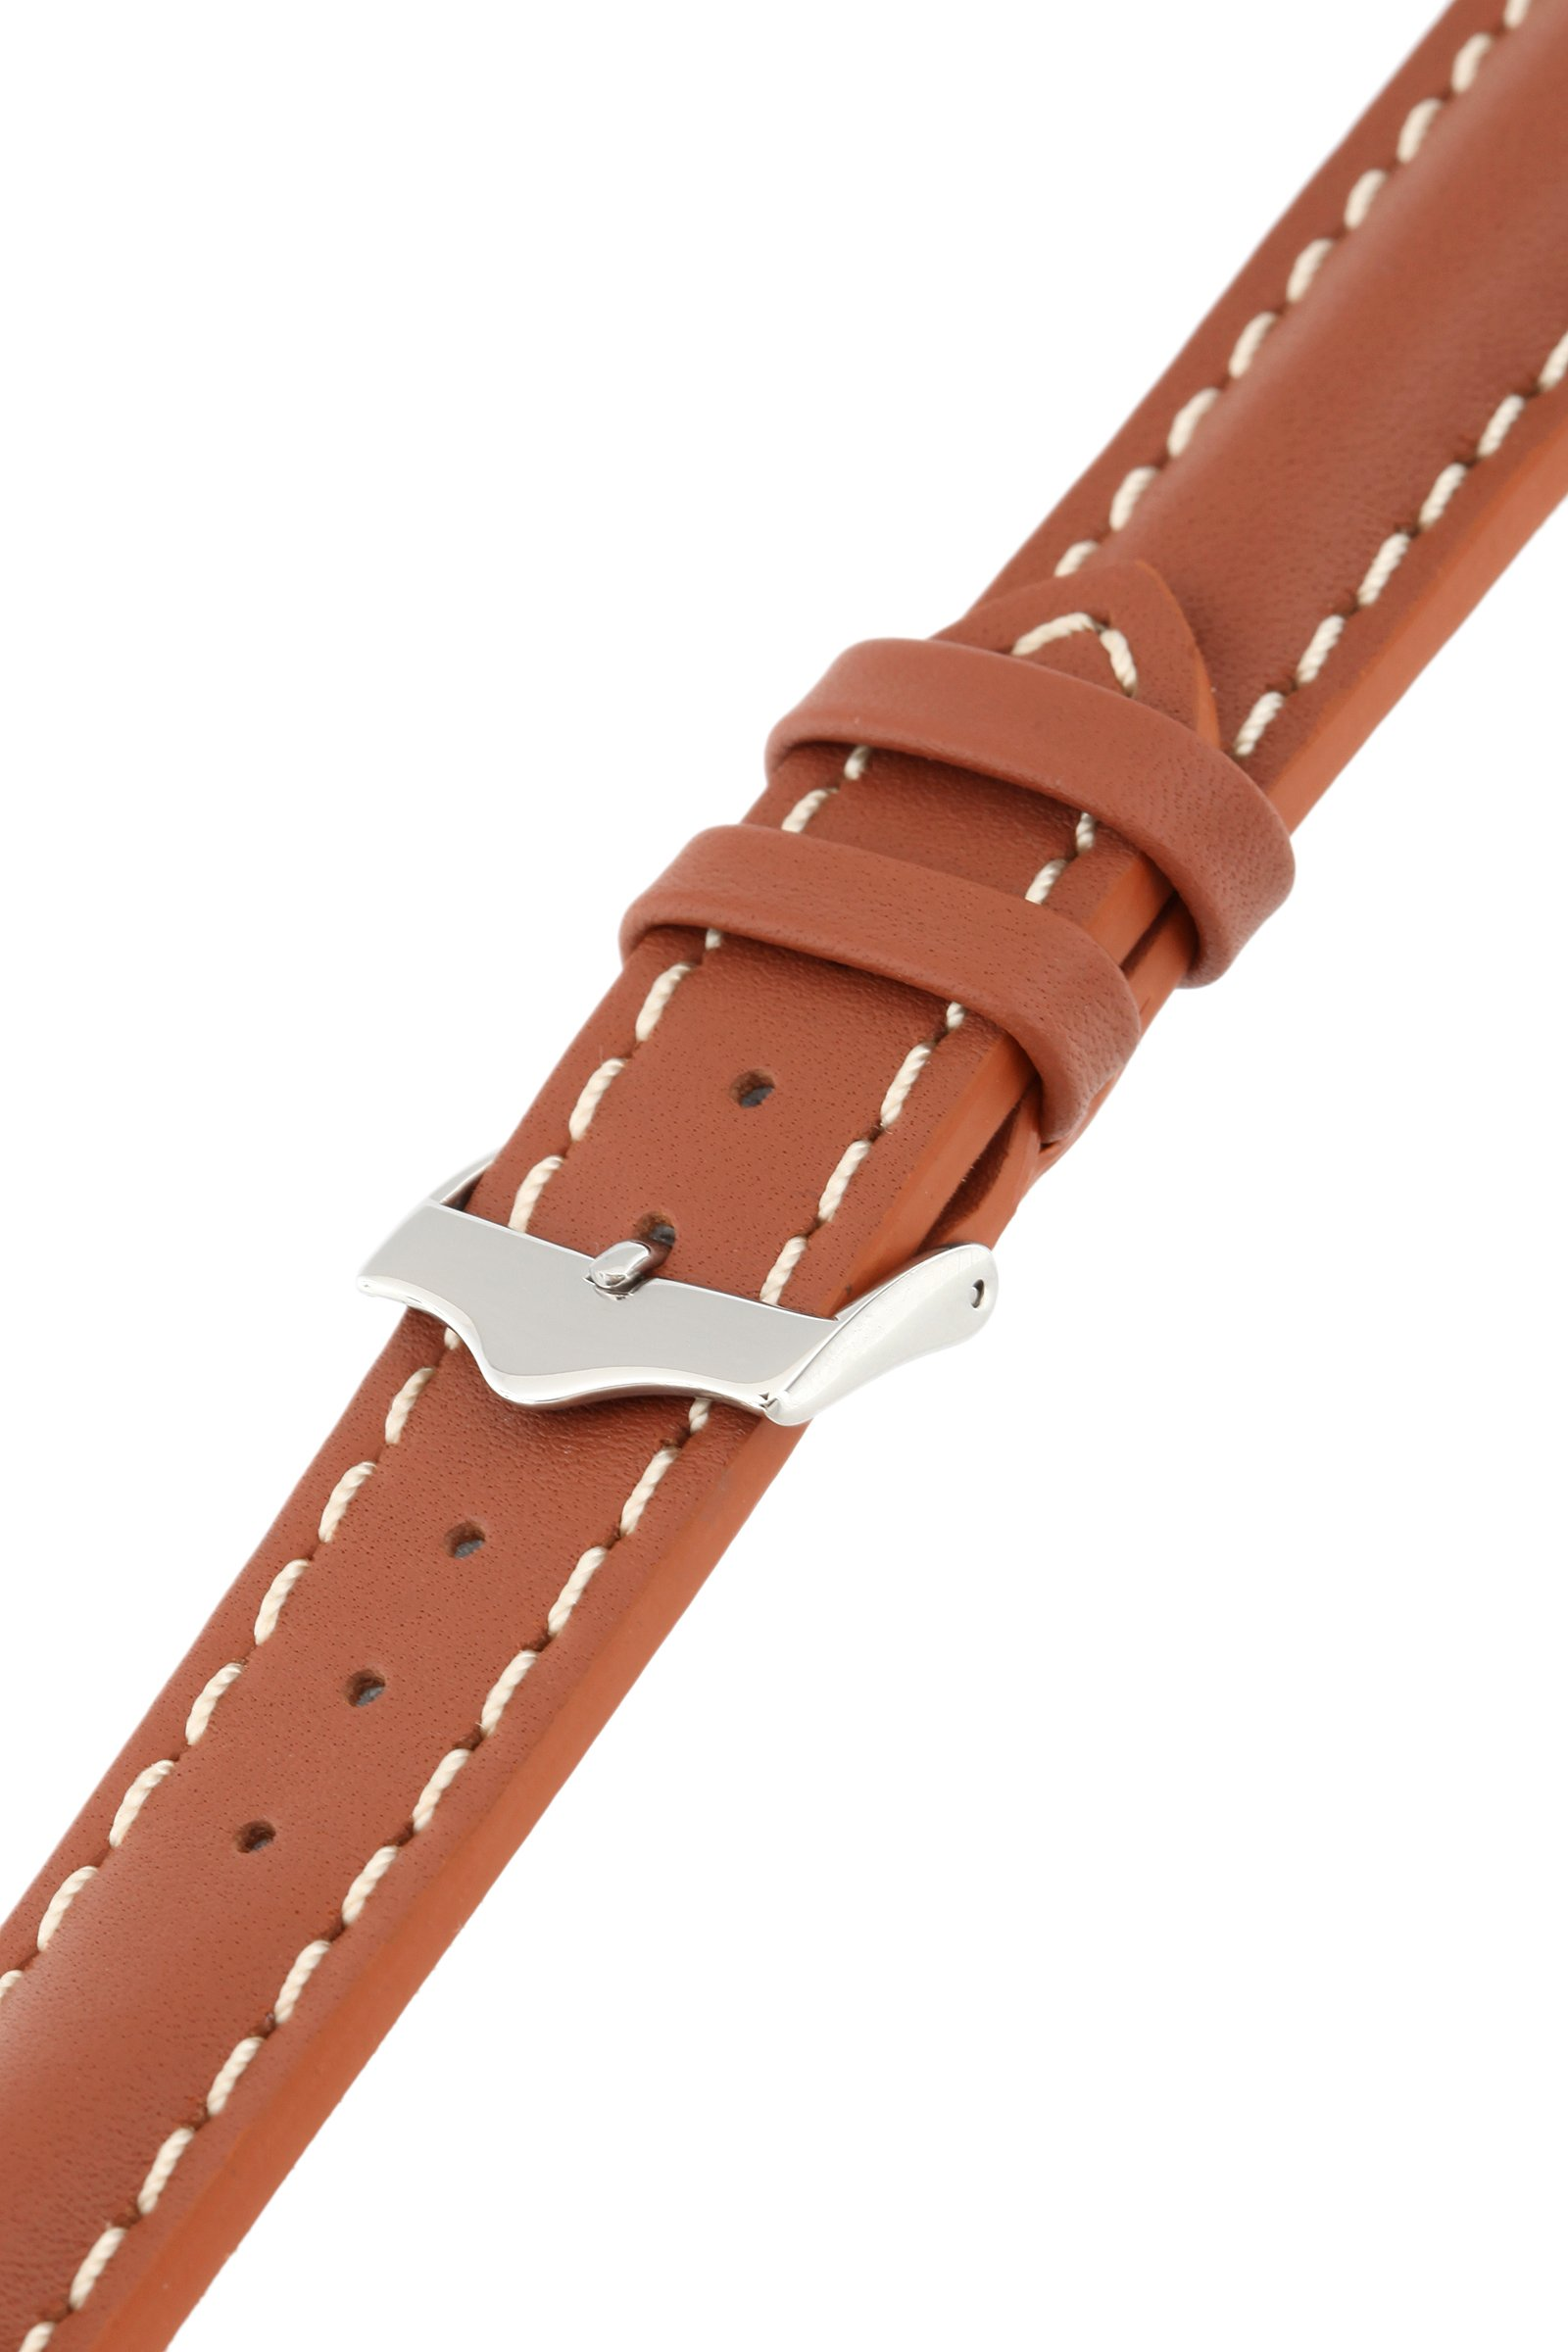 Signature Racing Wood 20 mm watch band. Replacement watch strap. Genuine Leather. Silver buckle by Signature (Image #4)